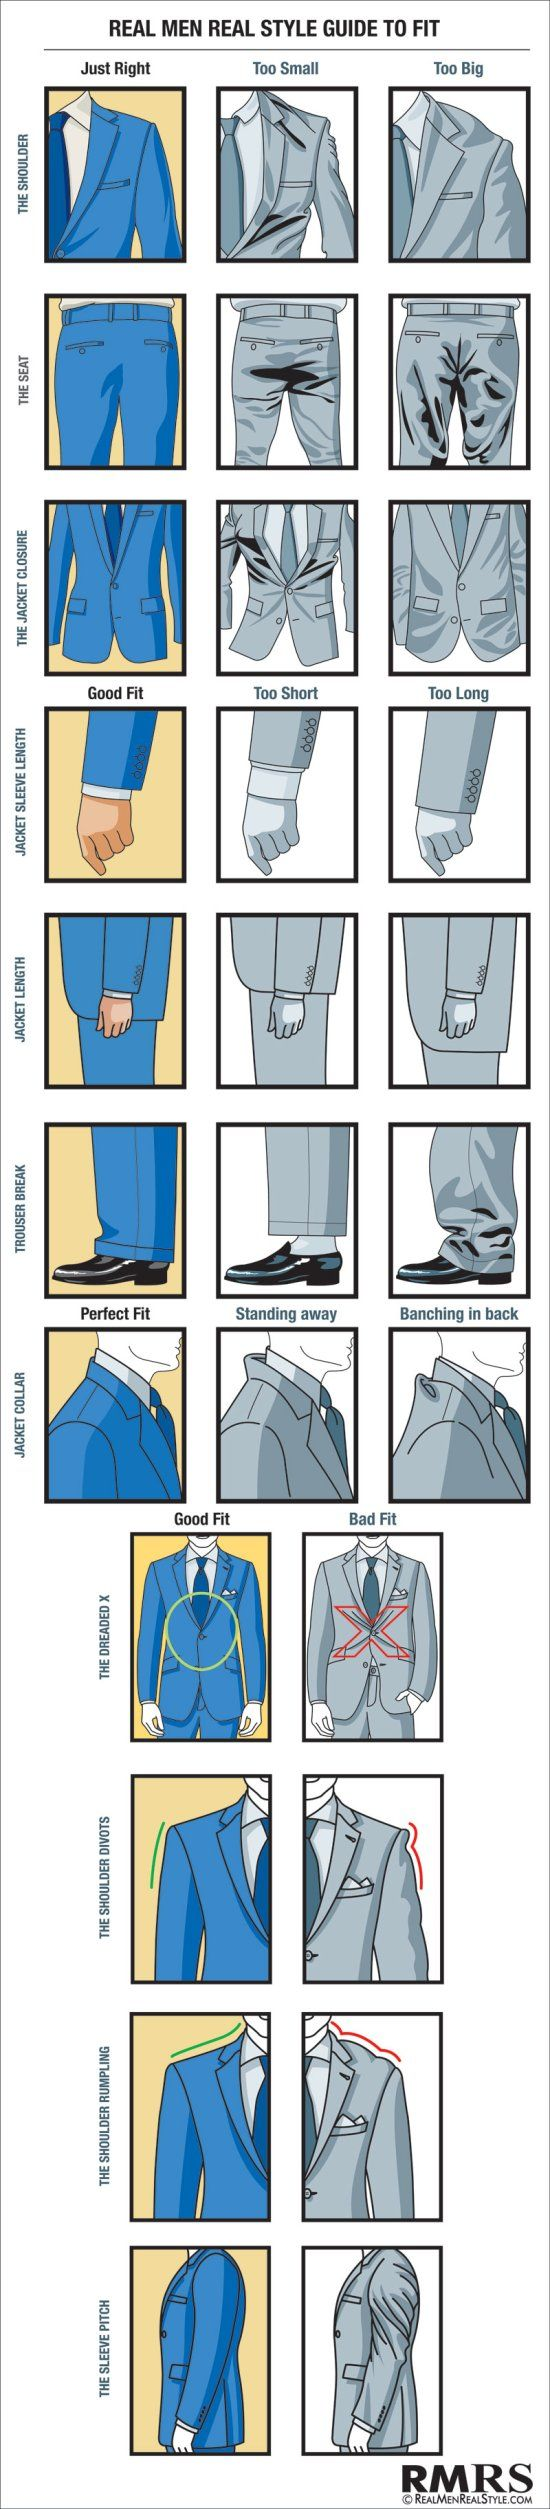 Suit Fit Diagram By Mark Kwak In 2018 Details Suits Pinterest Trinity Knot Tie From Network Remember These Tips The Next Time You Go Shopping